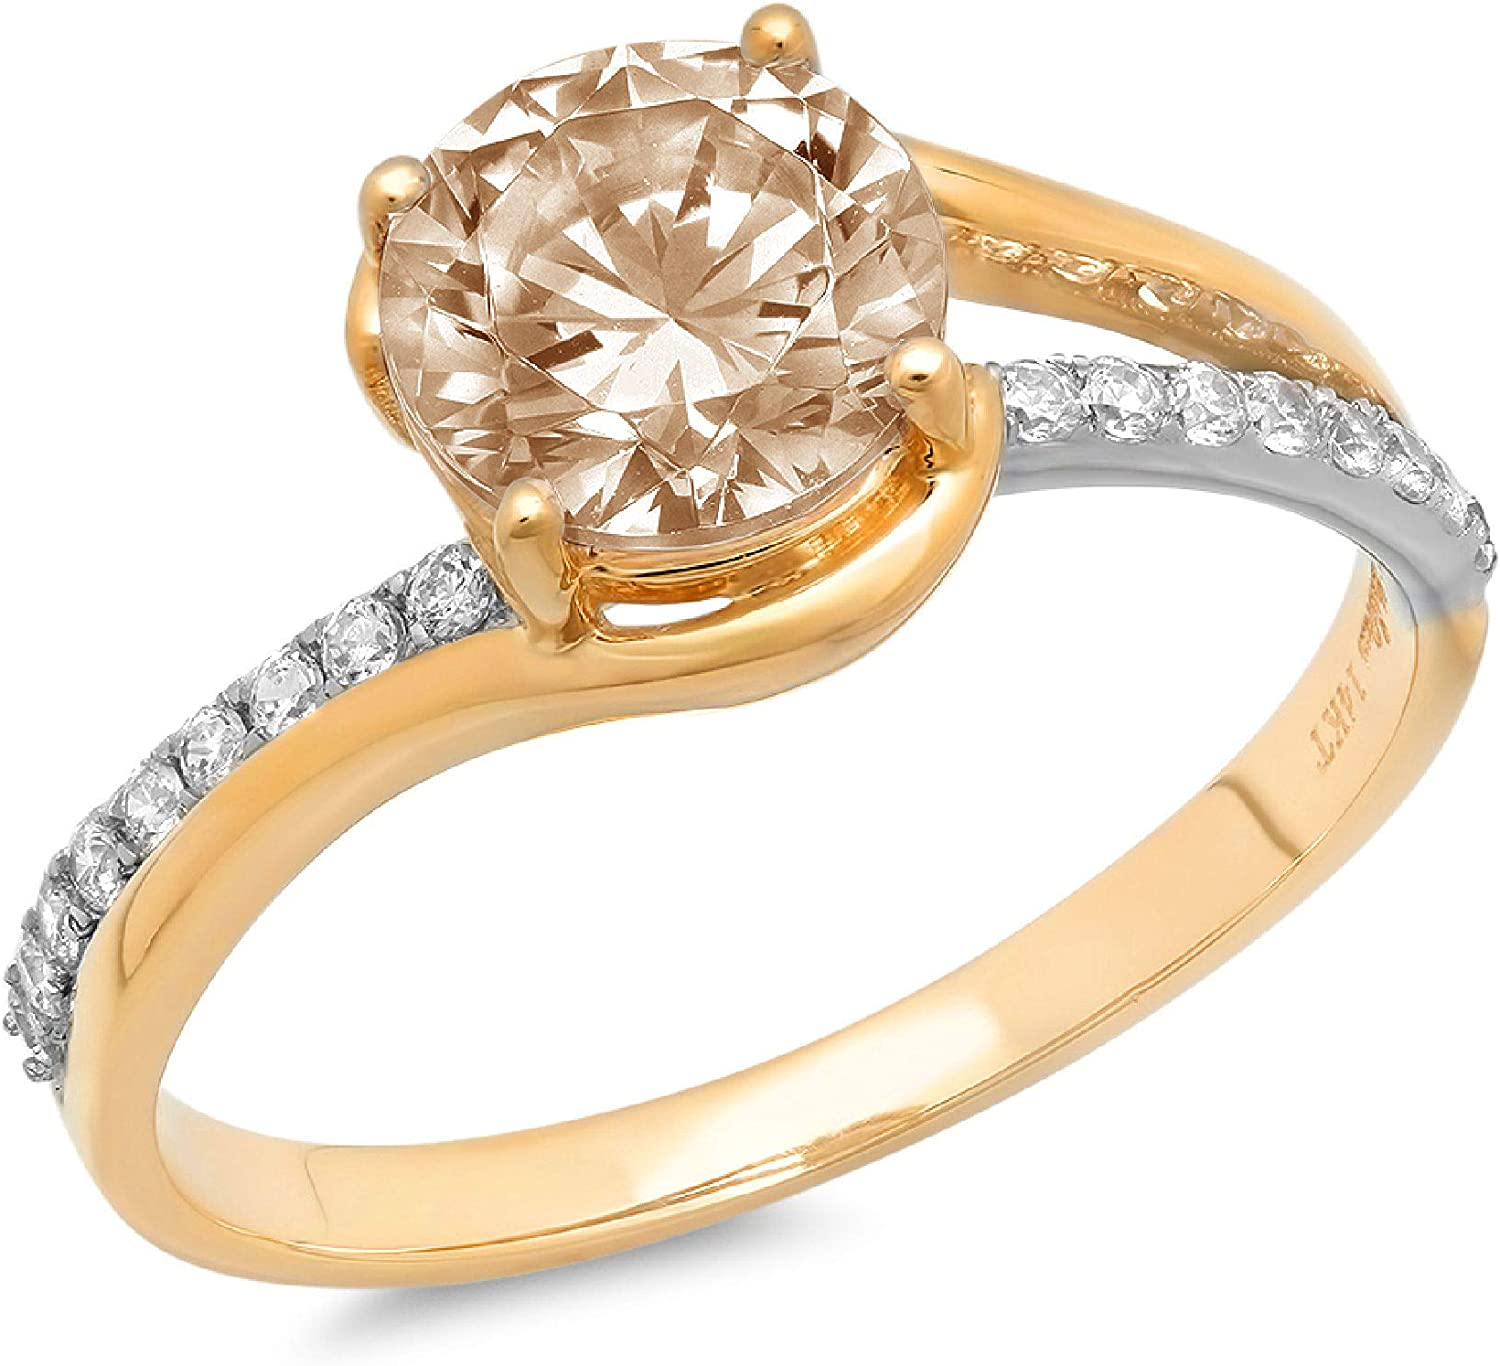 Clara Pucci 2.03 ct Brilliant Round Cut Solitaire Stunning Genuine Flawless Champagne Simulated Diamond Gem Designer Modern Statement Accent Ring Solid 18K 2 tone Yellow Gold